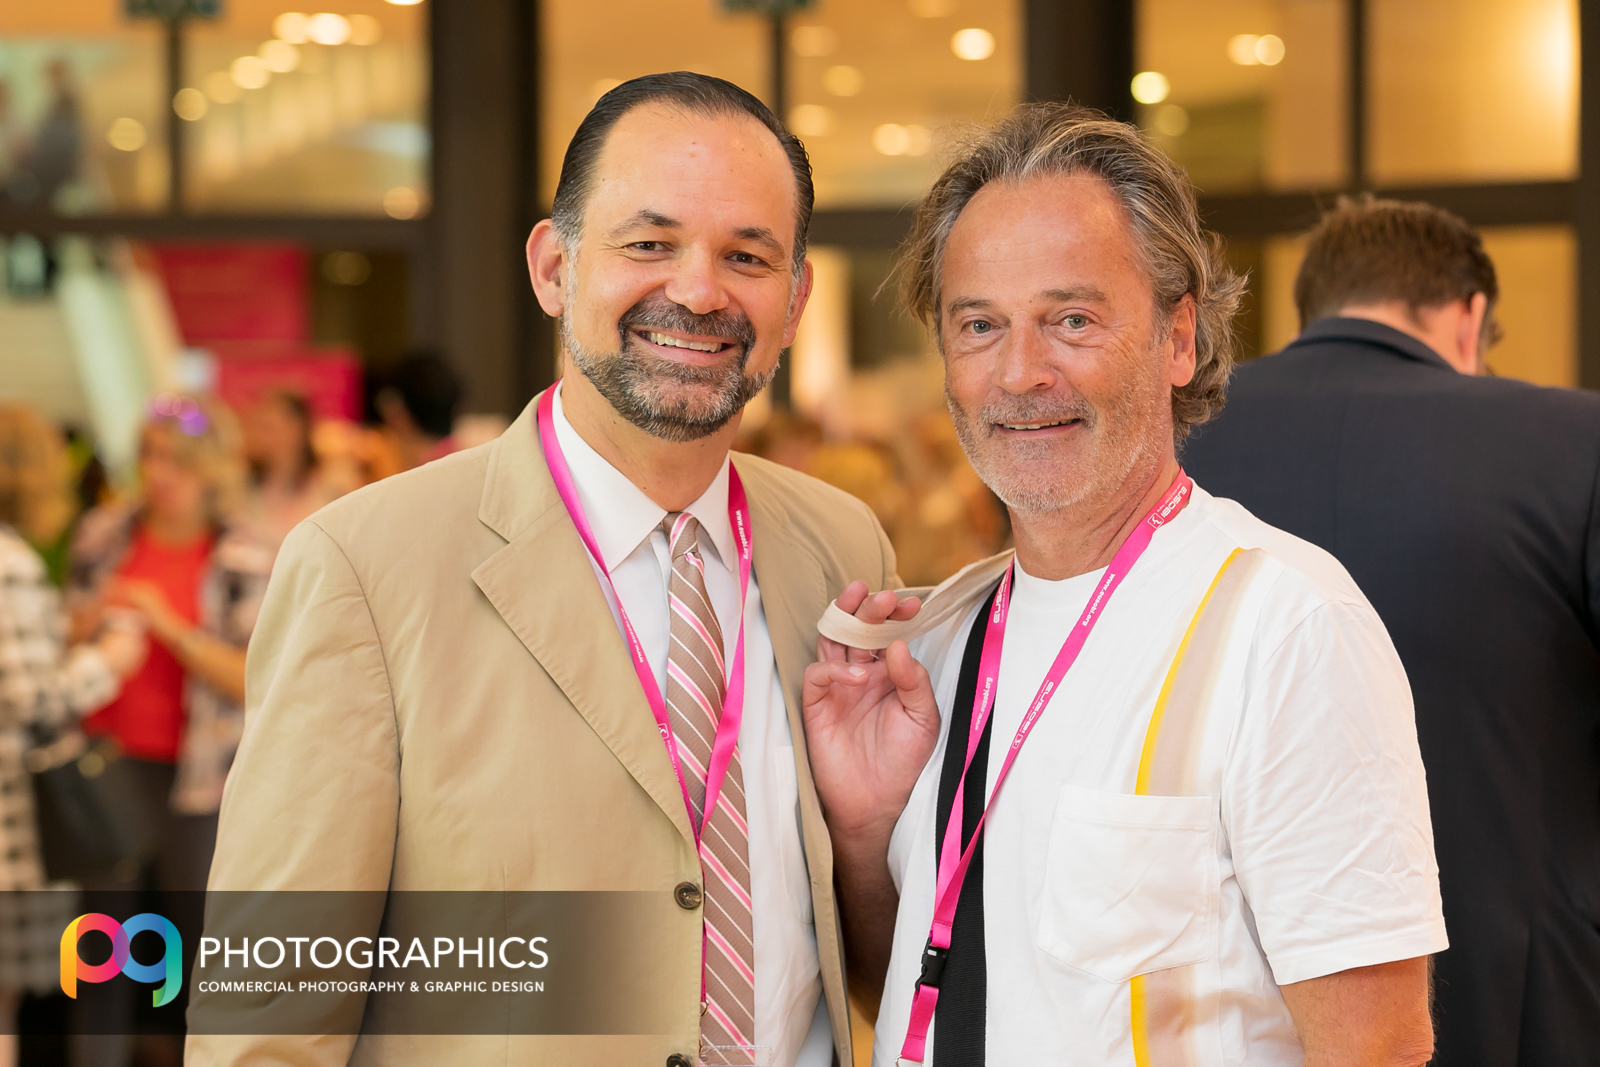 Conference-event-photography-glasgow-edinburgh-athens-3.jpg